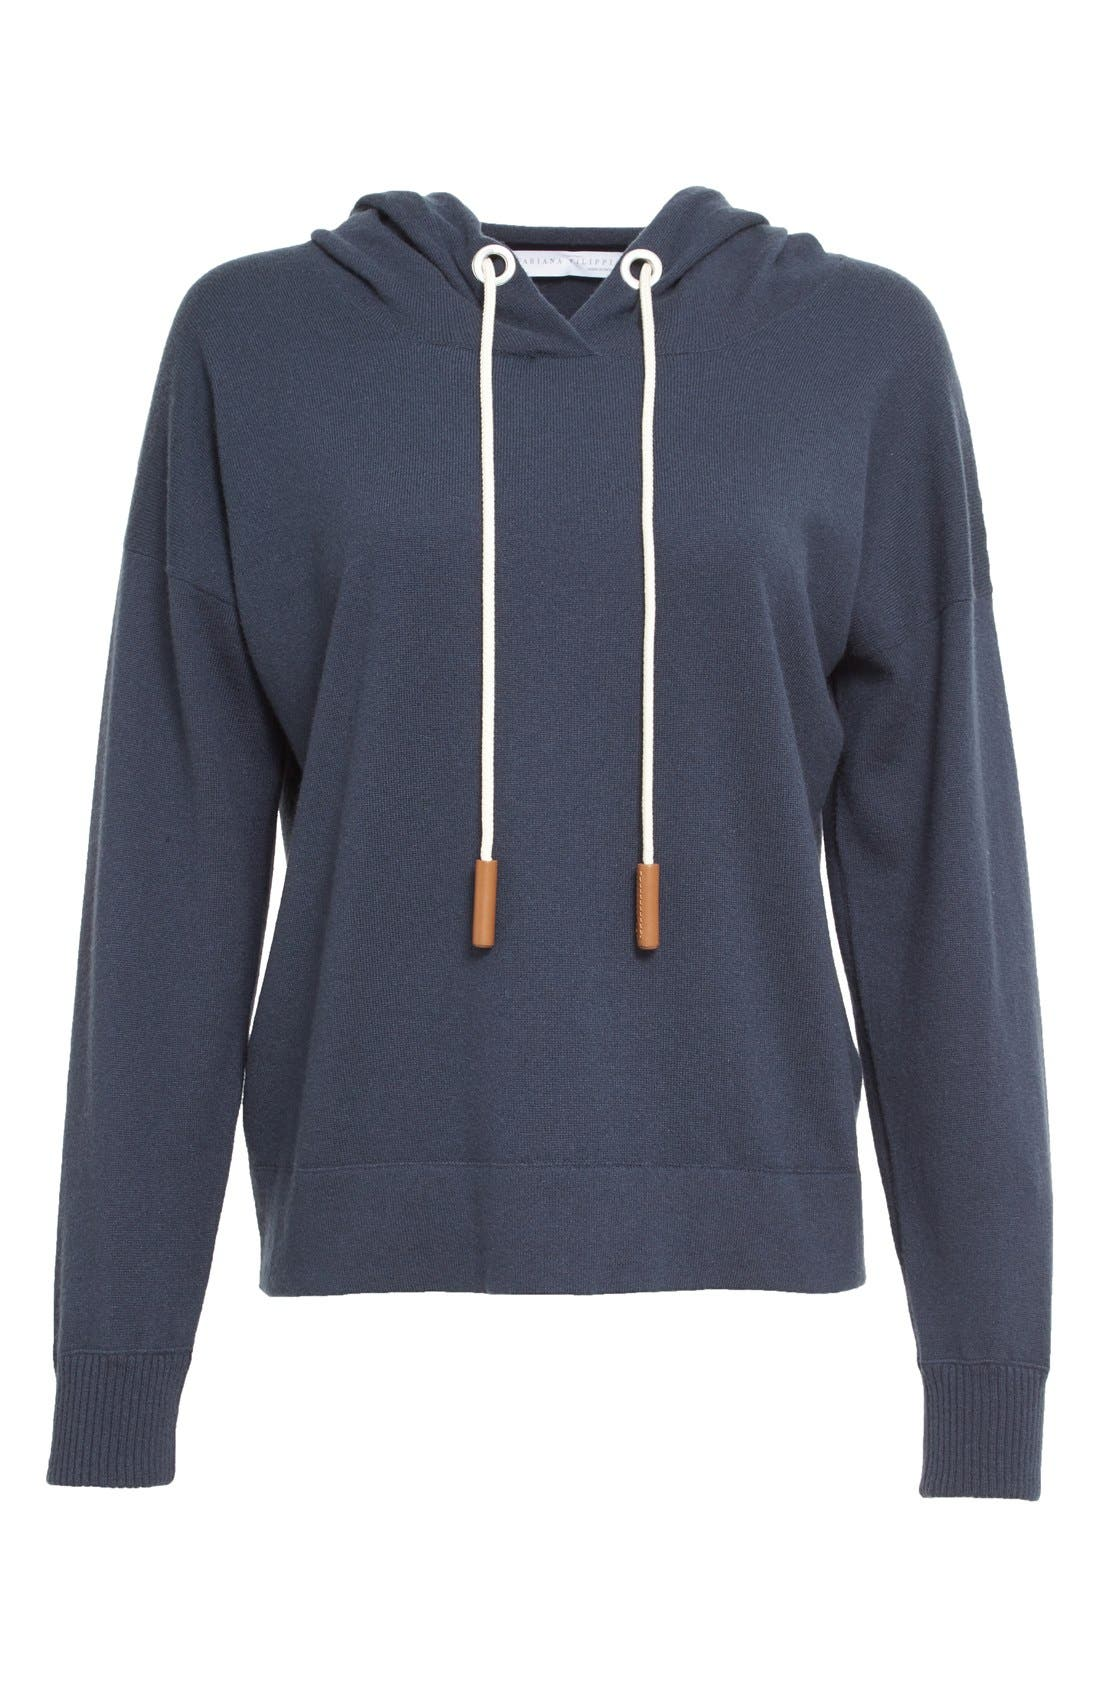 Cashmere Hooded Sweatshirt,                             Alternate thumbnail 4, color,                             400